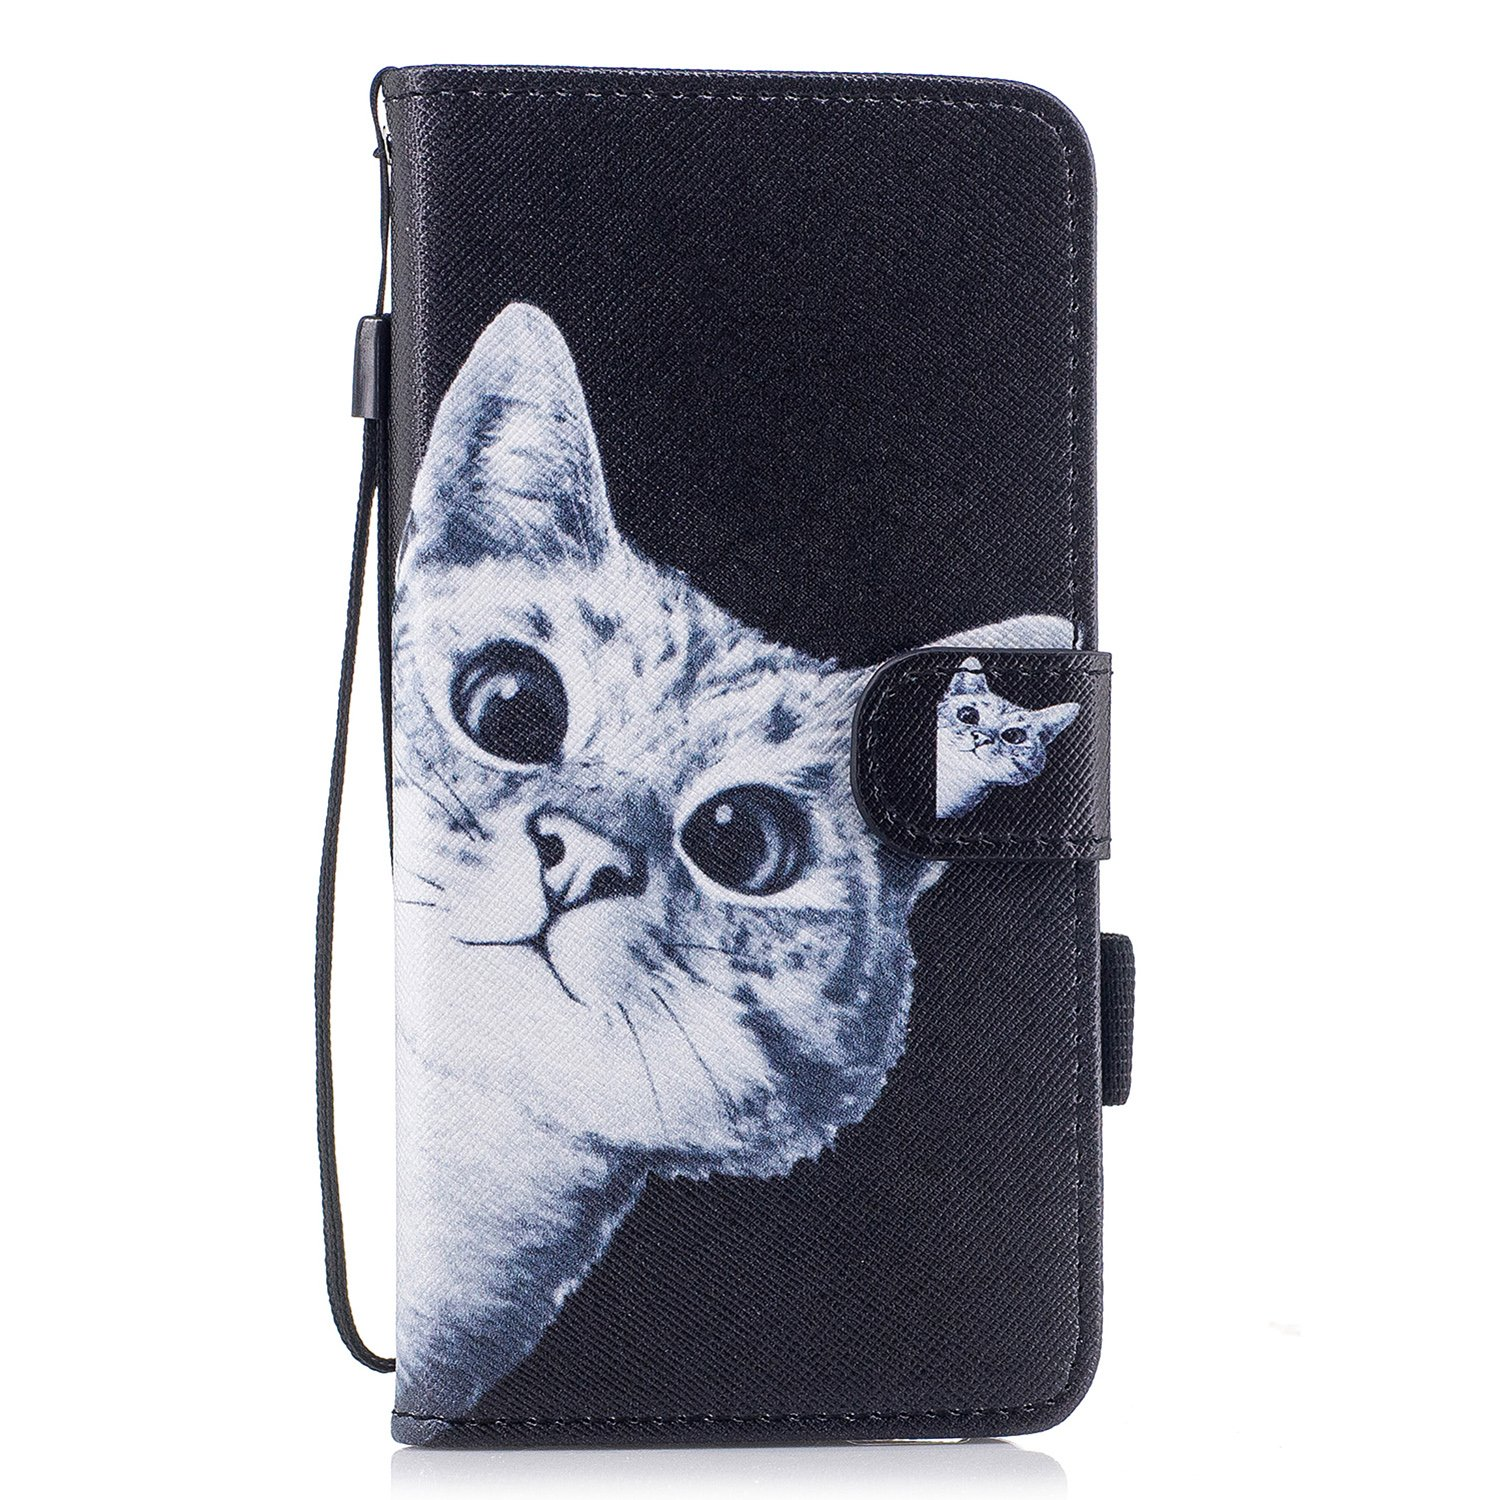 MerKuyom Case Compatible with Galaxy S9 Plus / S9+, [Wrist Strap] Kickstand PU Leather Wallet Pouch [Card Slots] Flip Cover Case Skin for Samsung Galaxy S9 Plus / S9+ (Cute Black Cat)